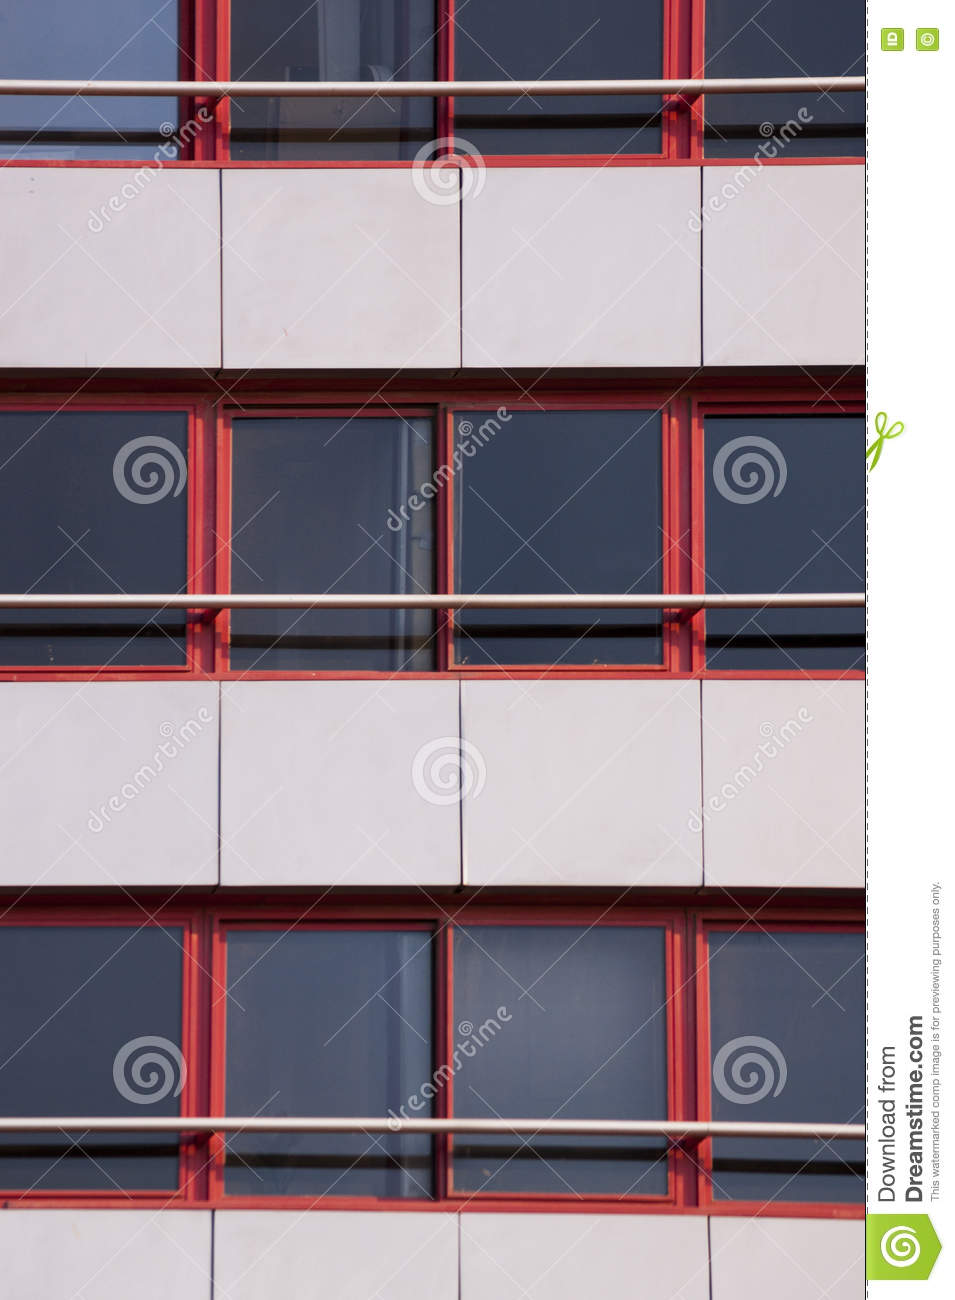 Red framed windows texture